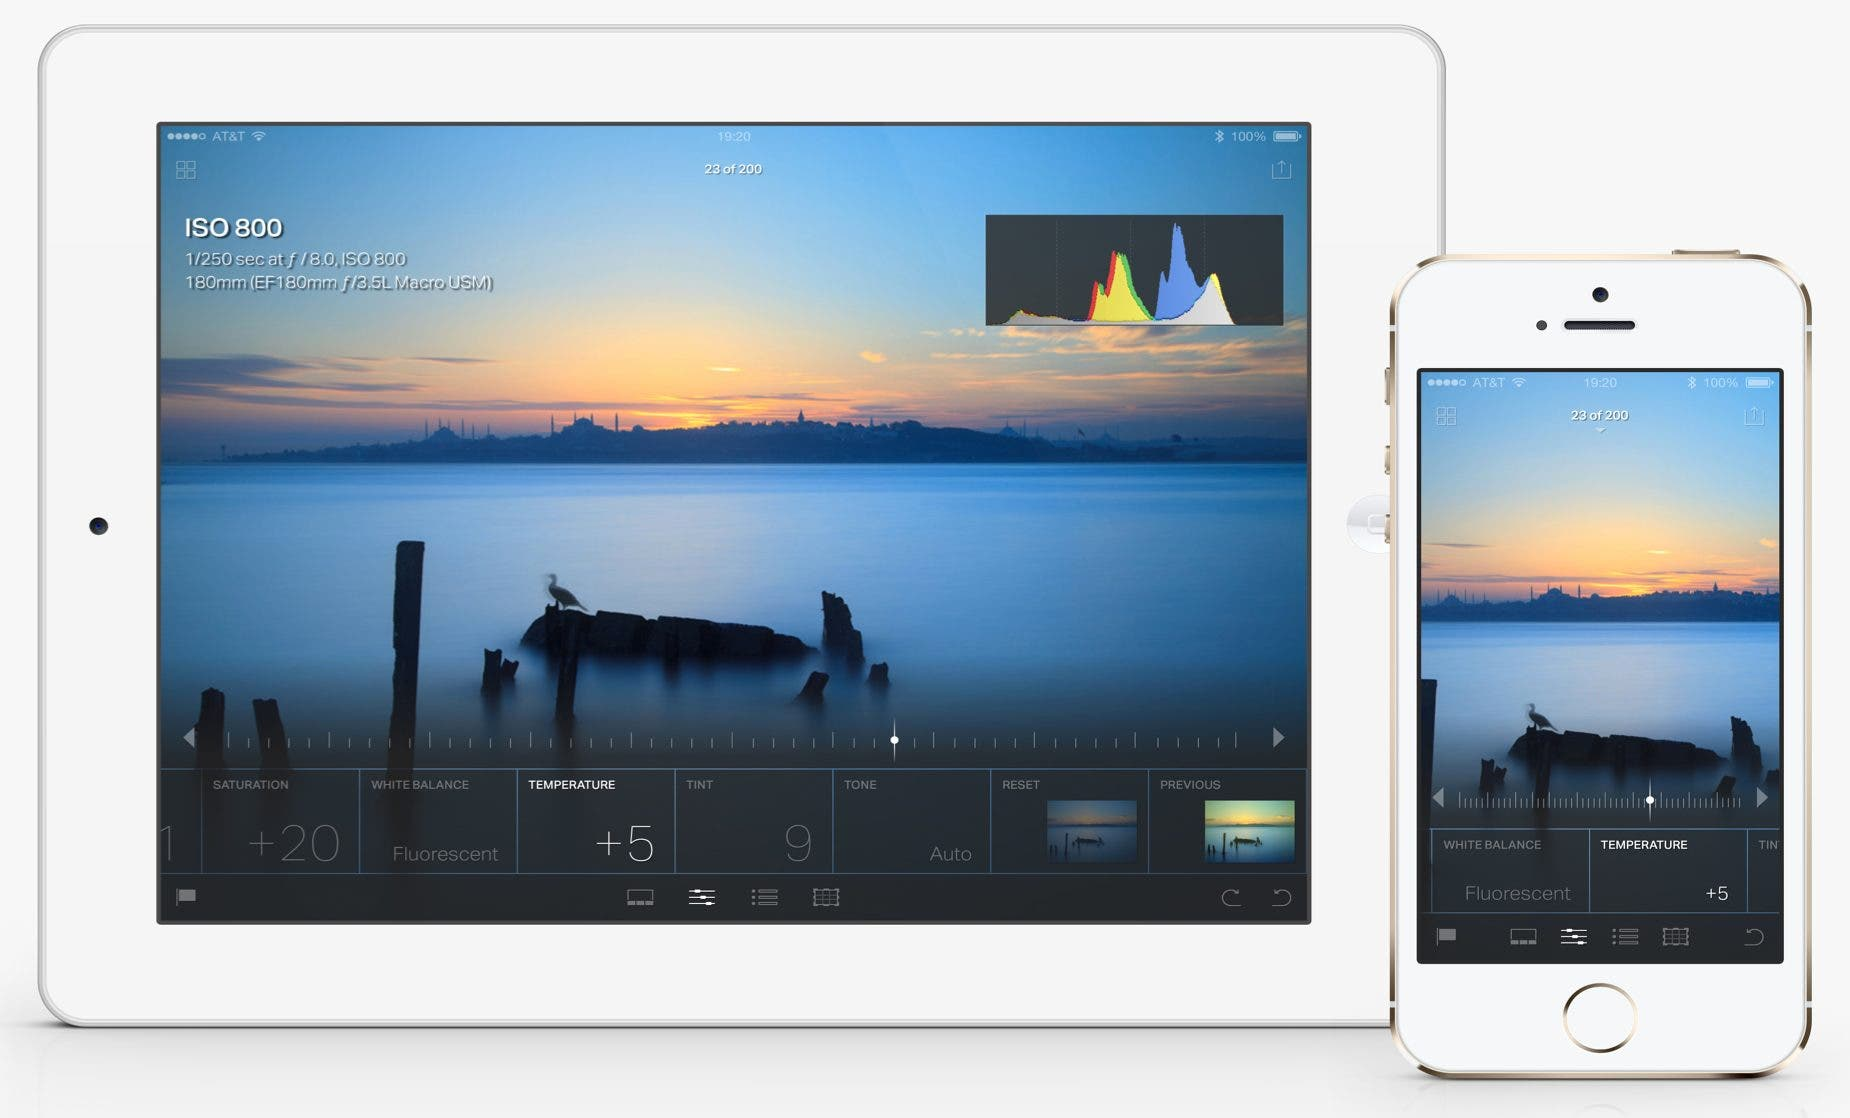 Adobe's Latest iOS Update Unlocks RAW Image Capture in Lightroom Mobile